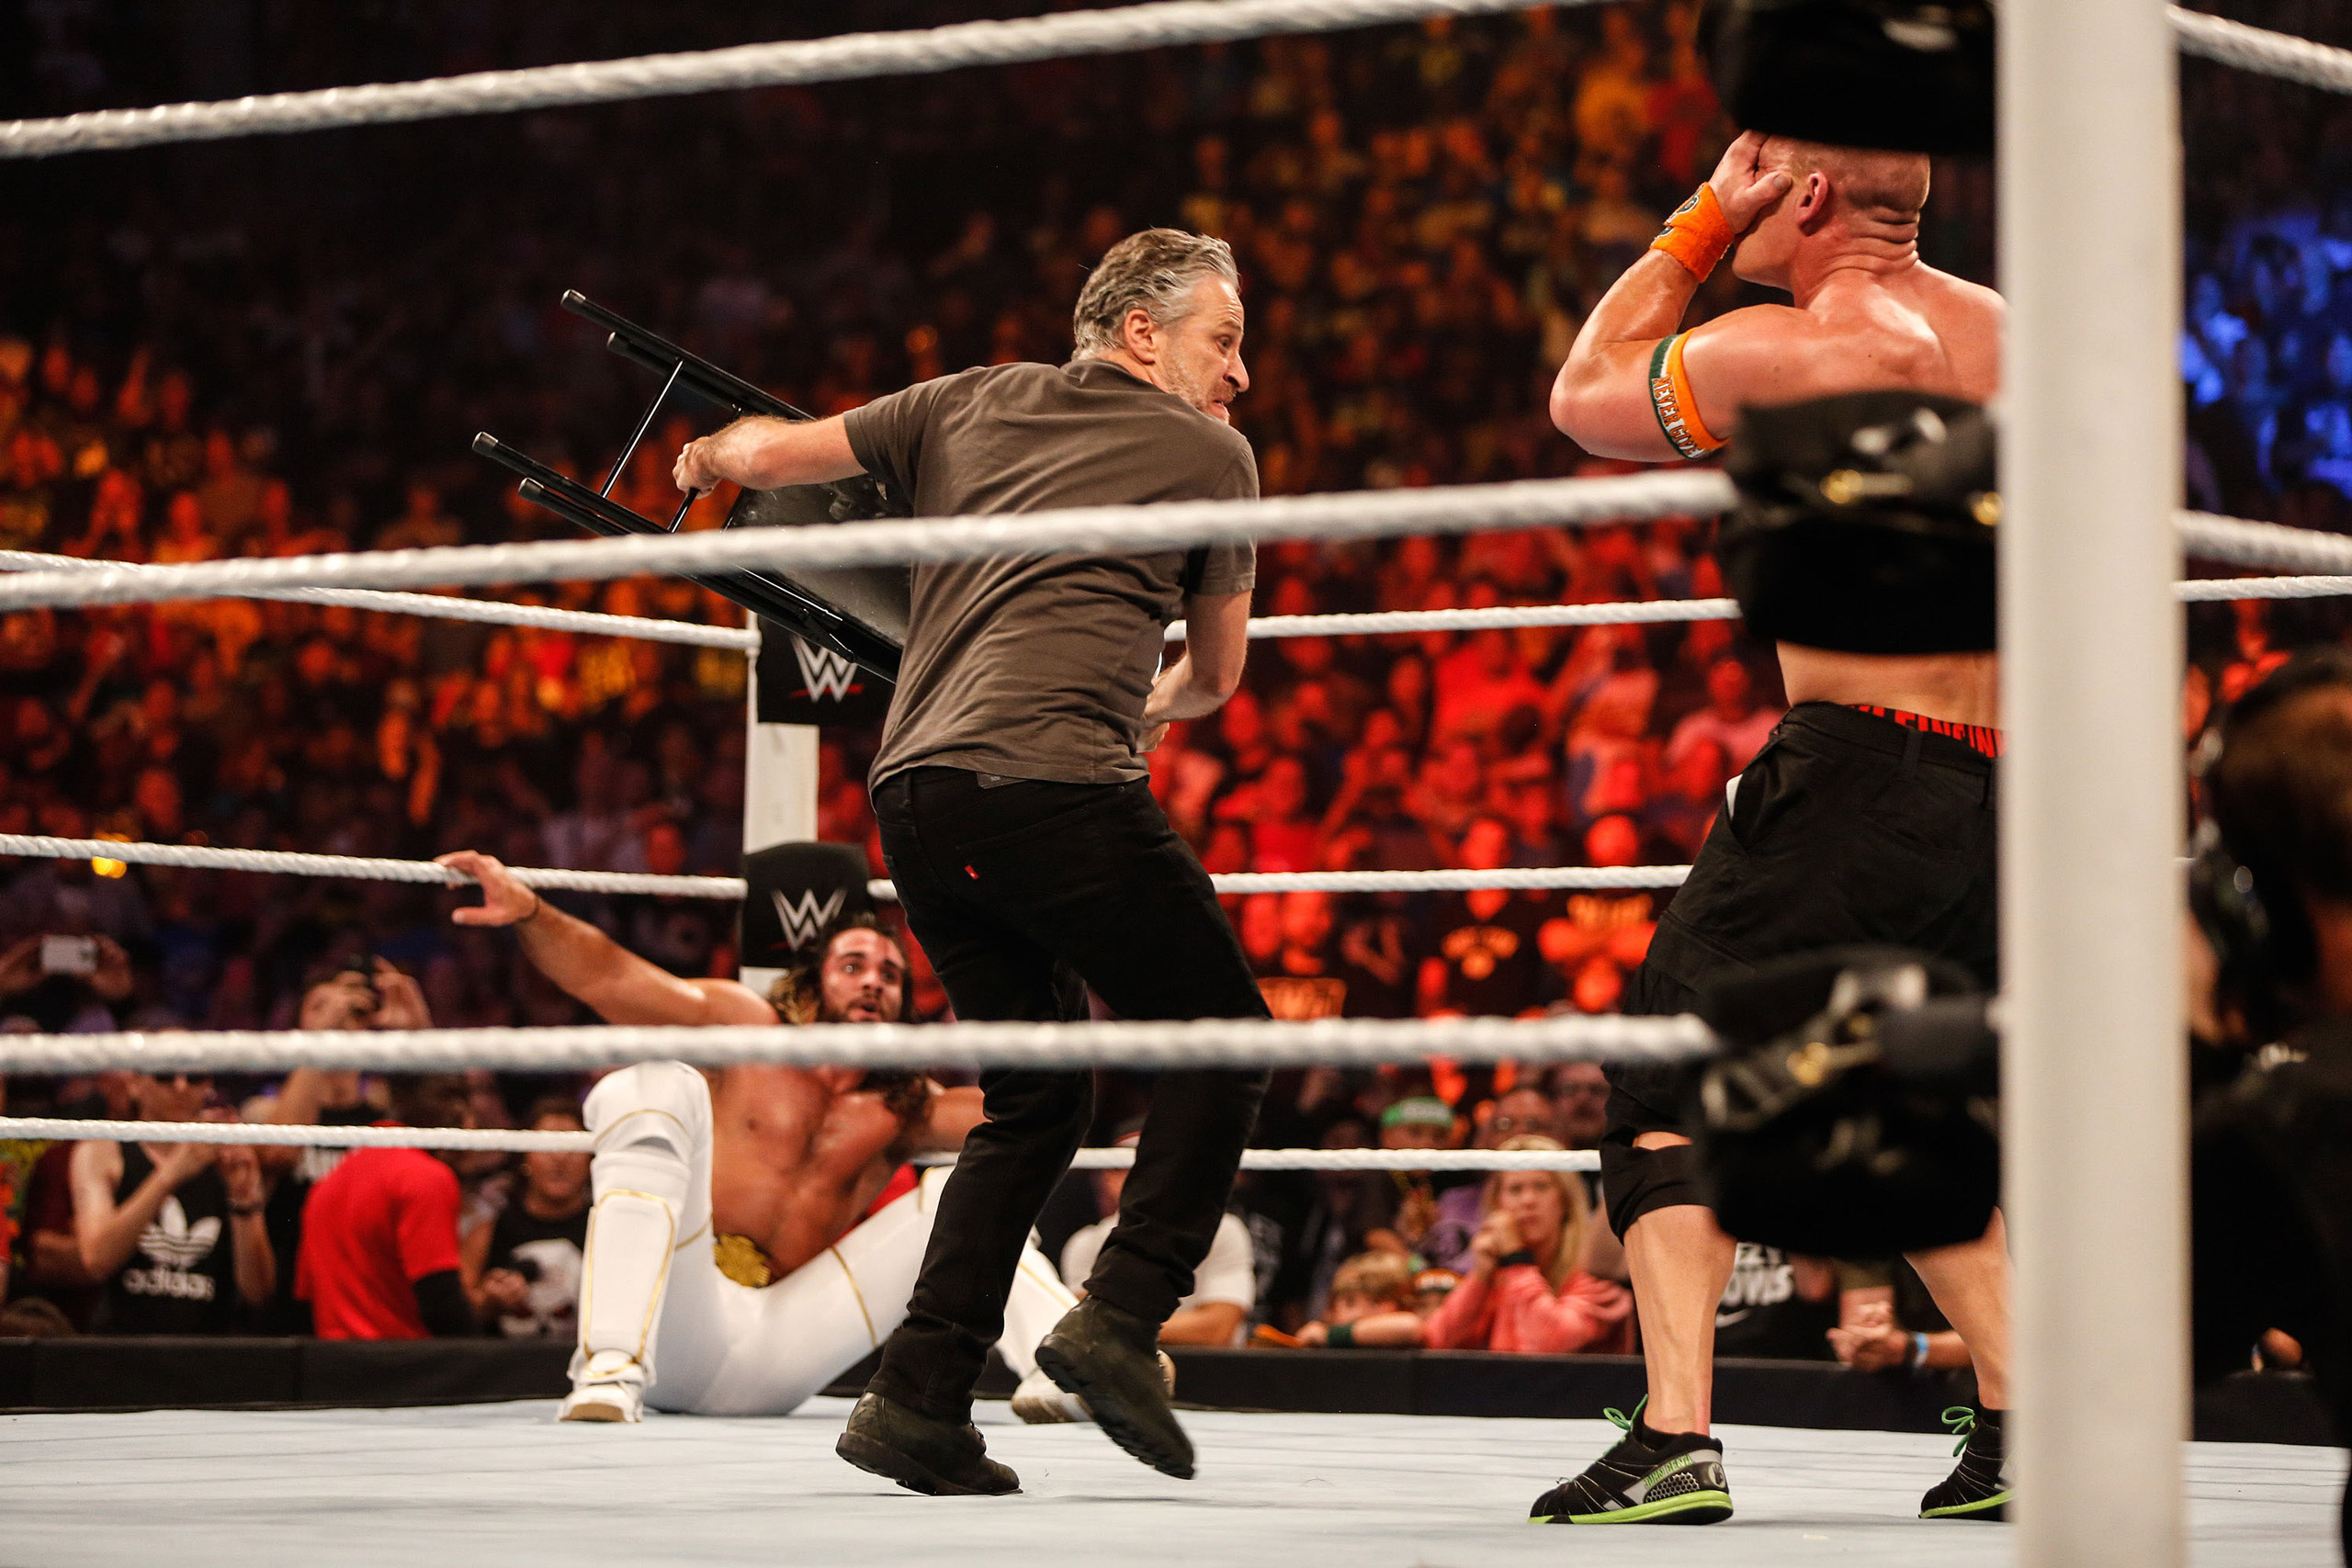 Jon Stewart gets into the action at WWE SummerSlam 2015 Barclays Center in New York City on Aug. 23, 2015.